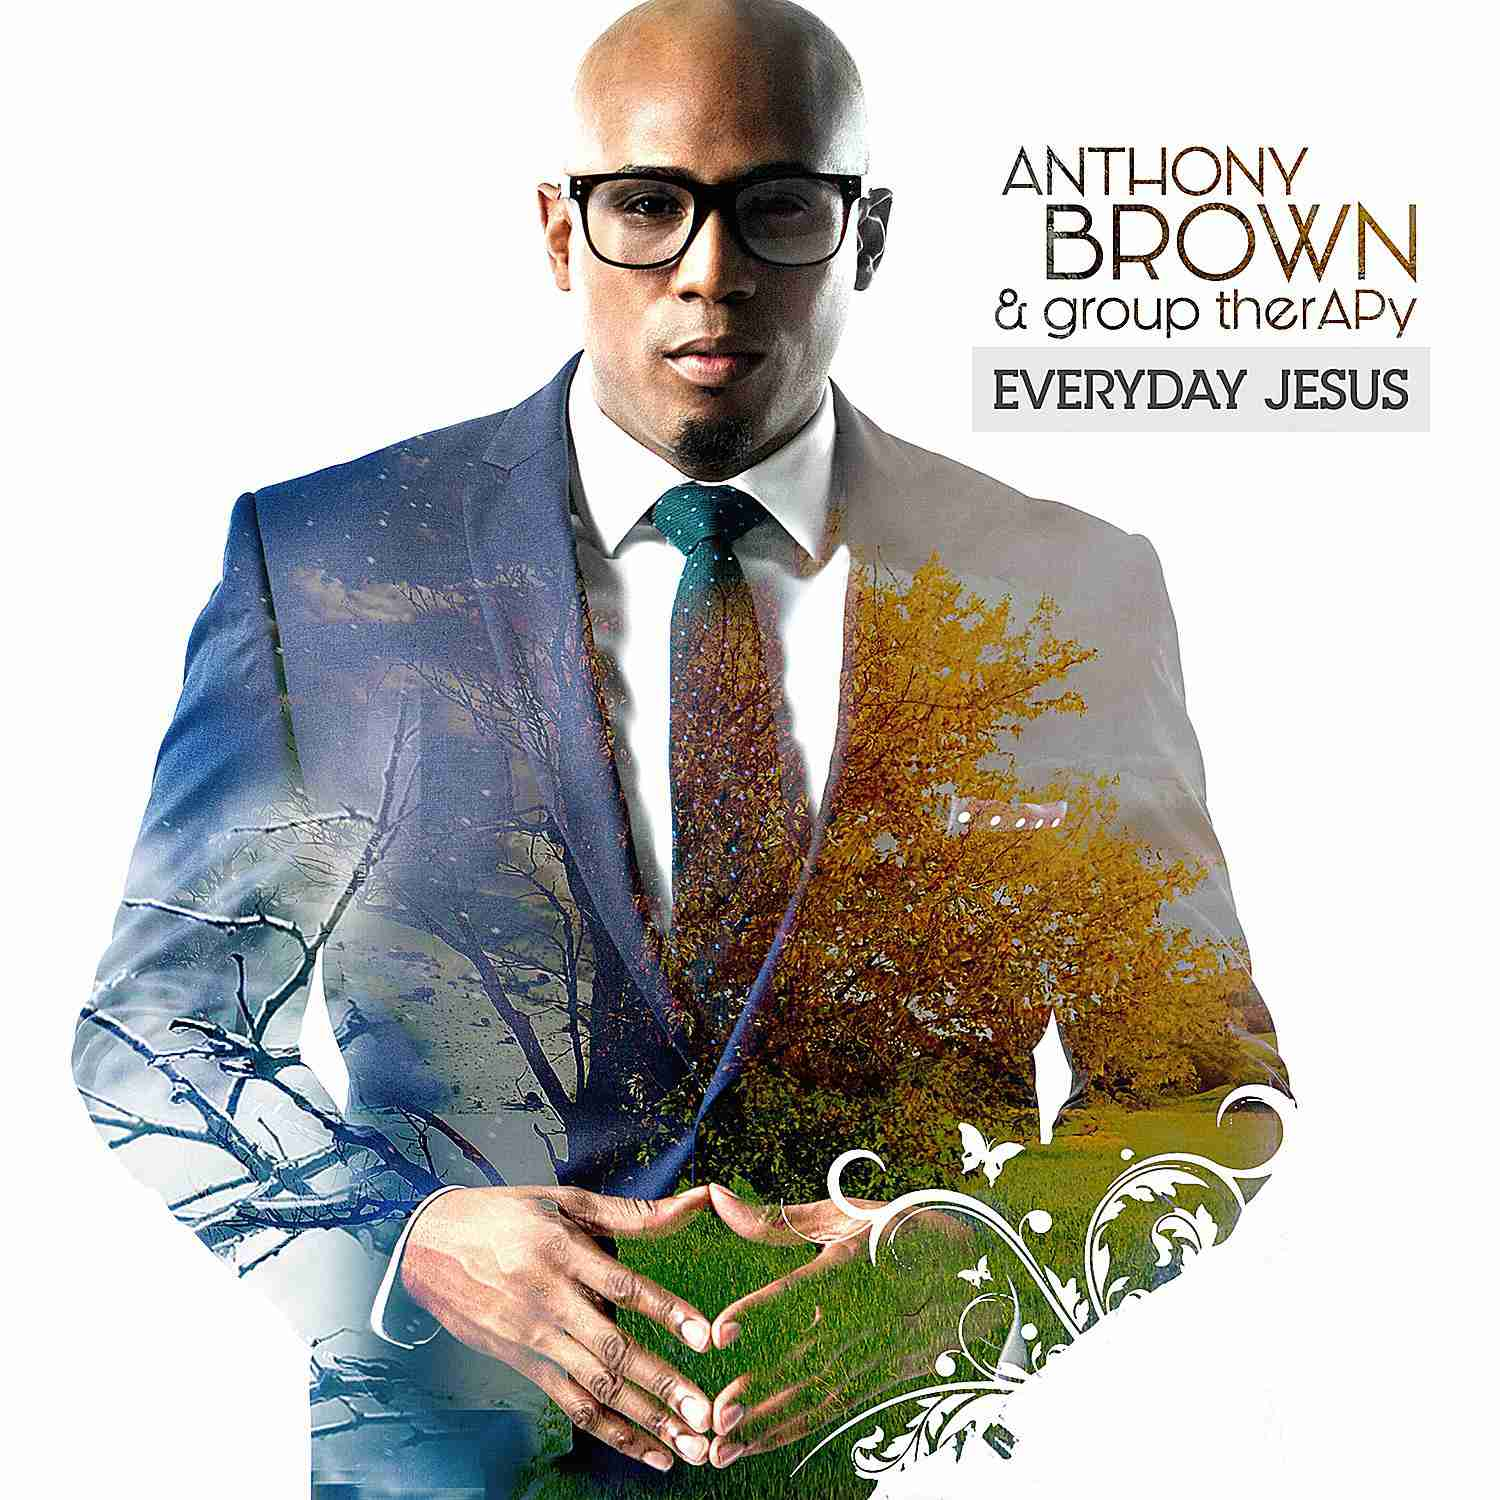 Anthony Brown & group therAPy - Everyday Jesus